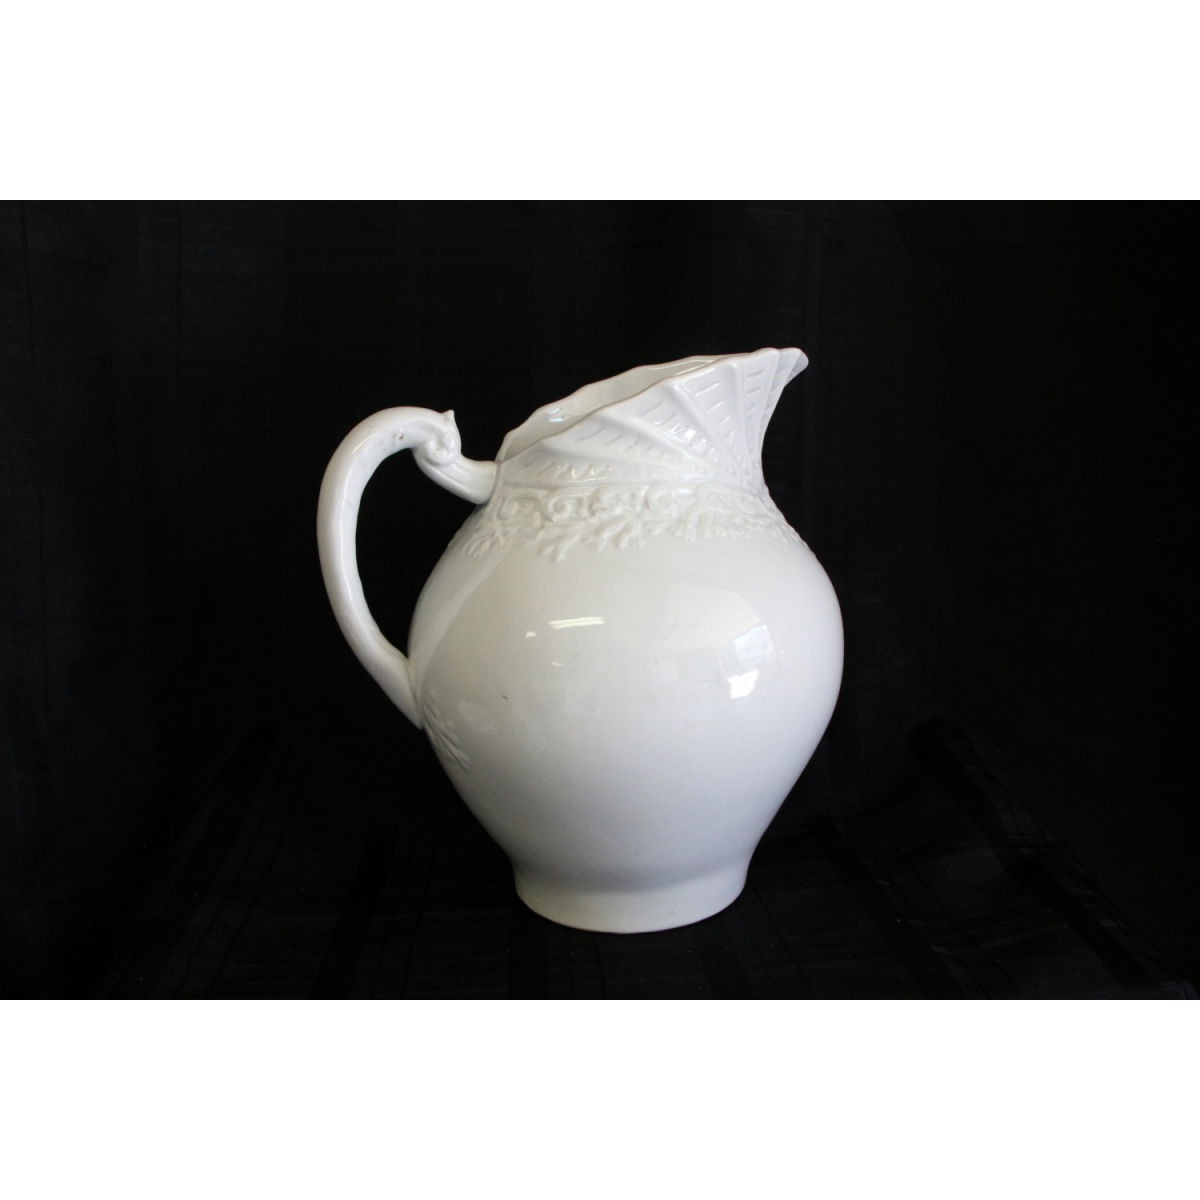 Gorgeous Ironstone Pitcher with Ornate Shell Embossing